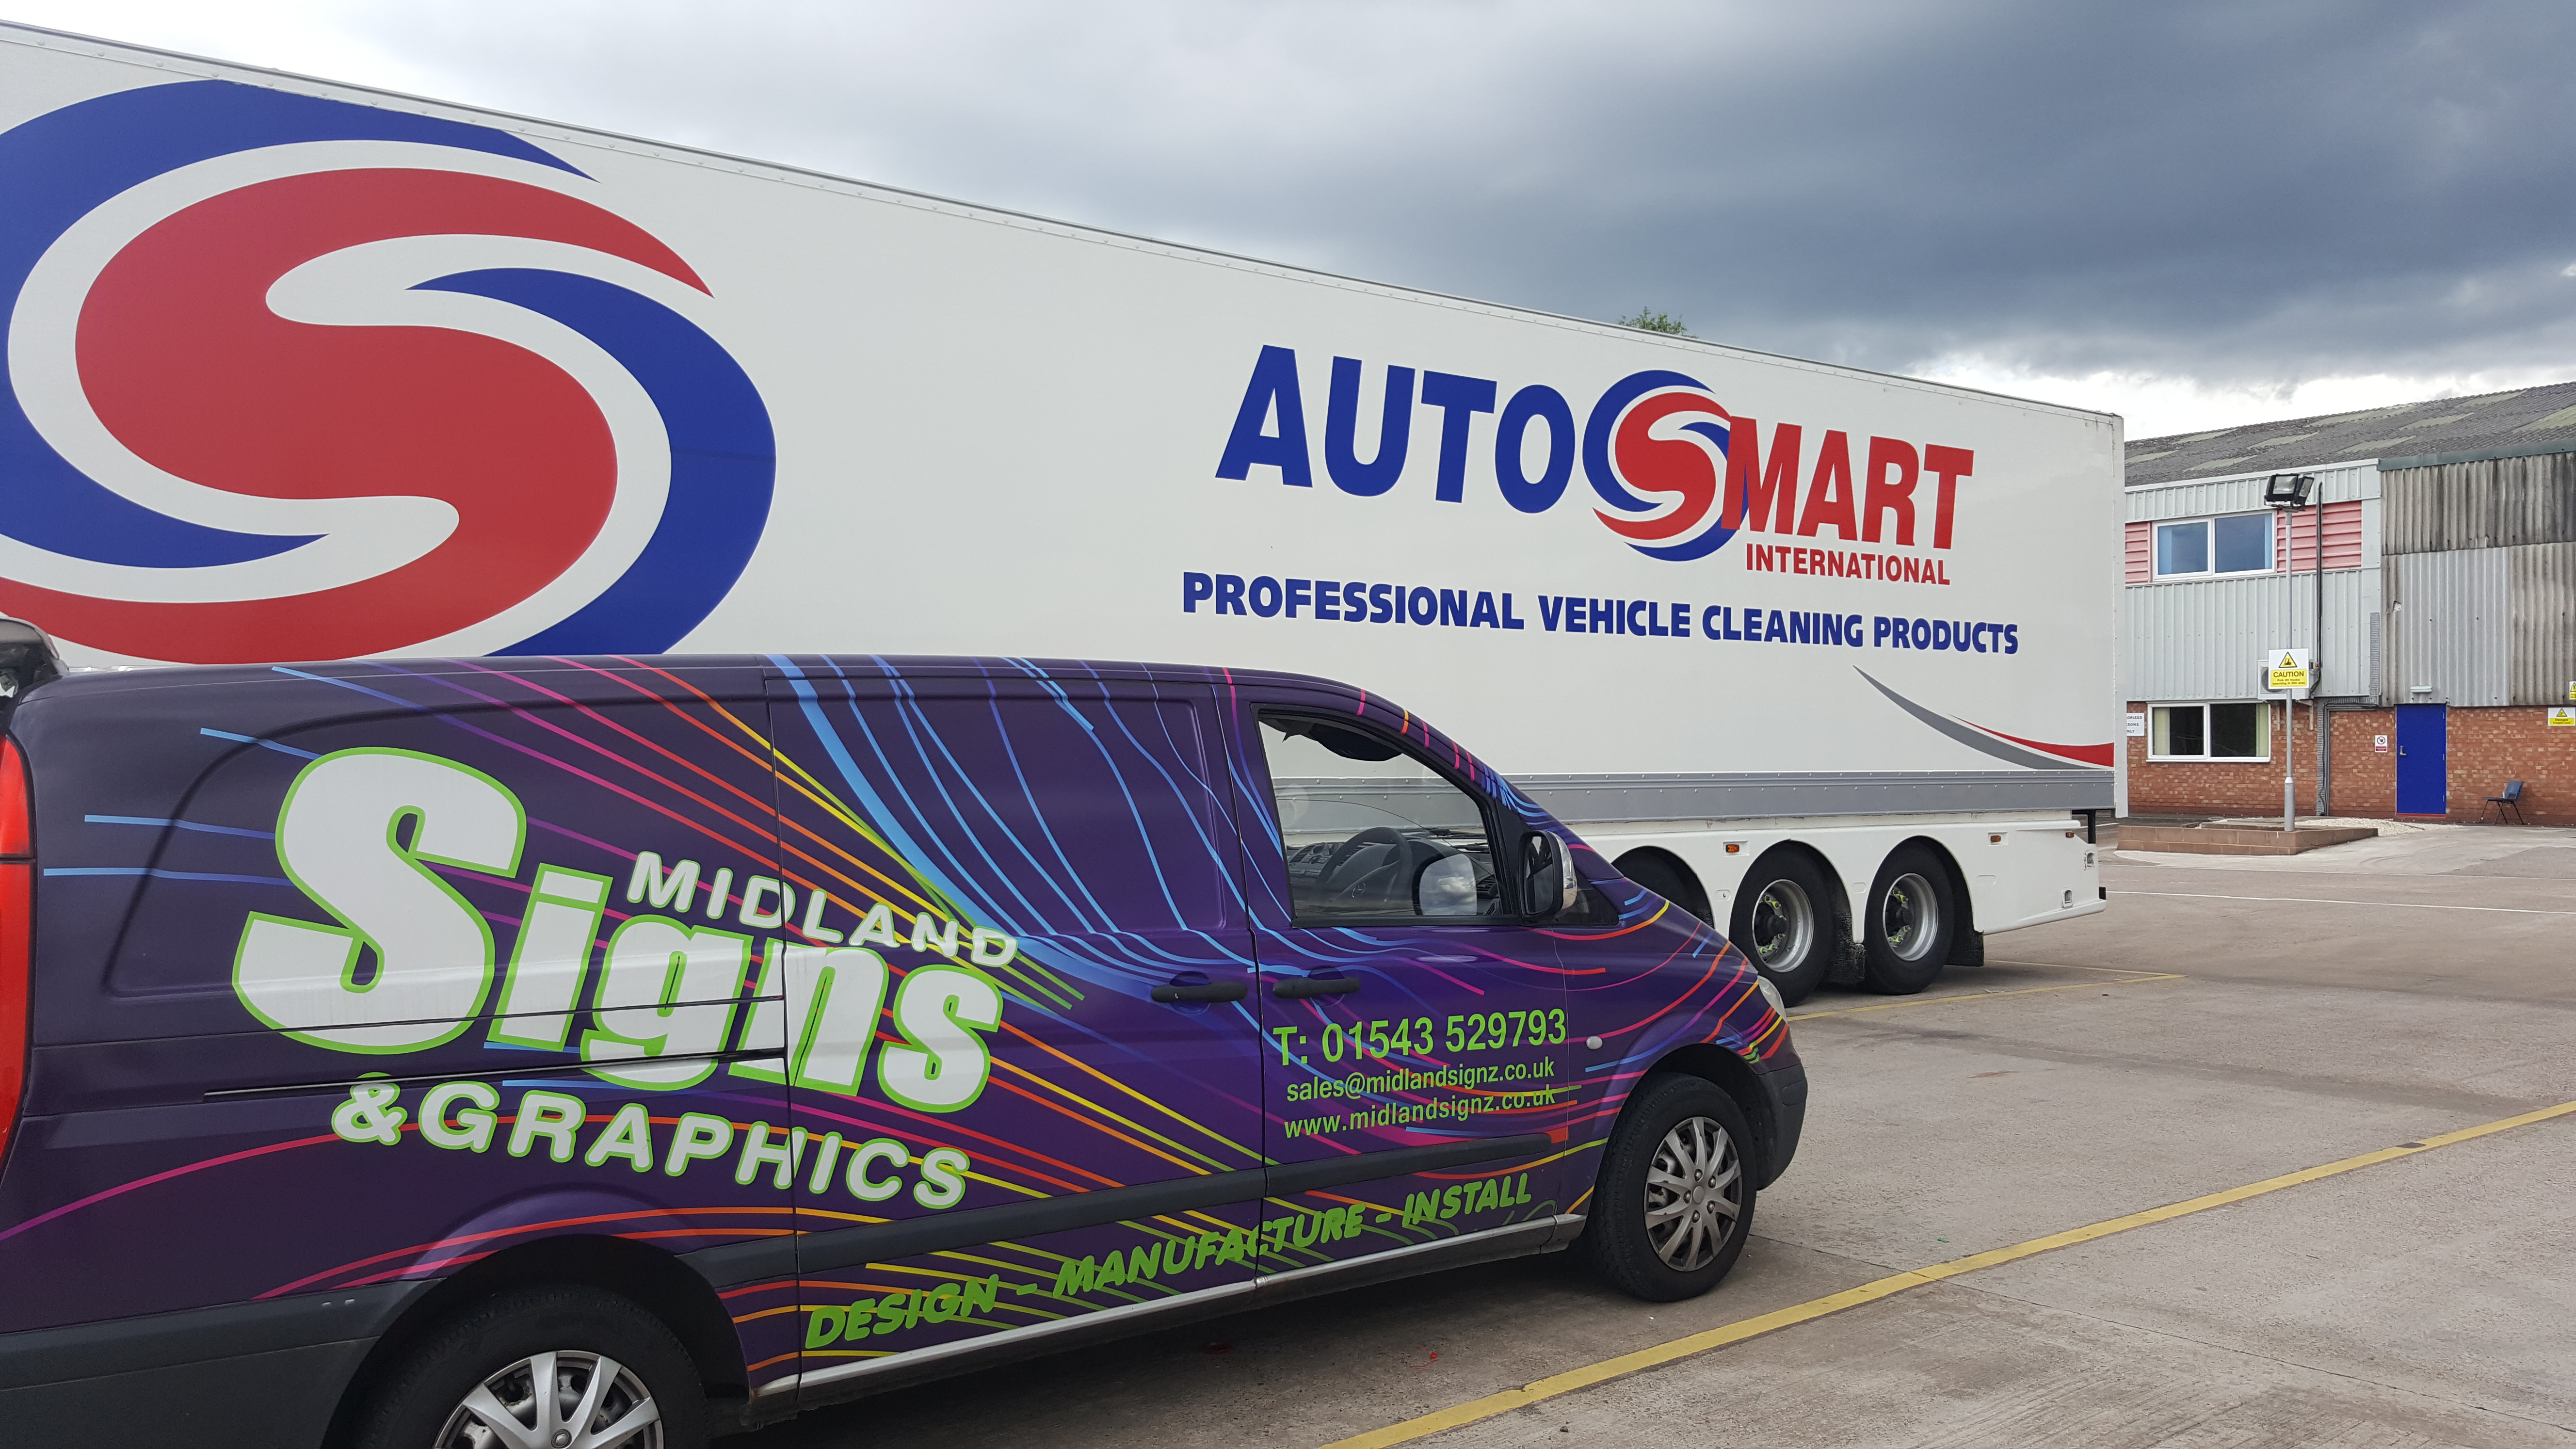 wrap completed for autosmart international using corporate colours midlands signs graphics. Black Bedroom Furniture Sets. Home Design Ideas